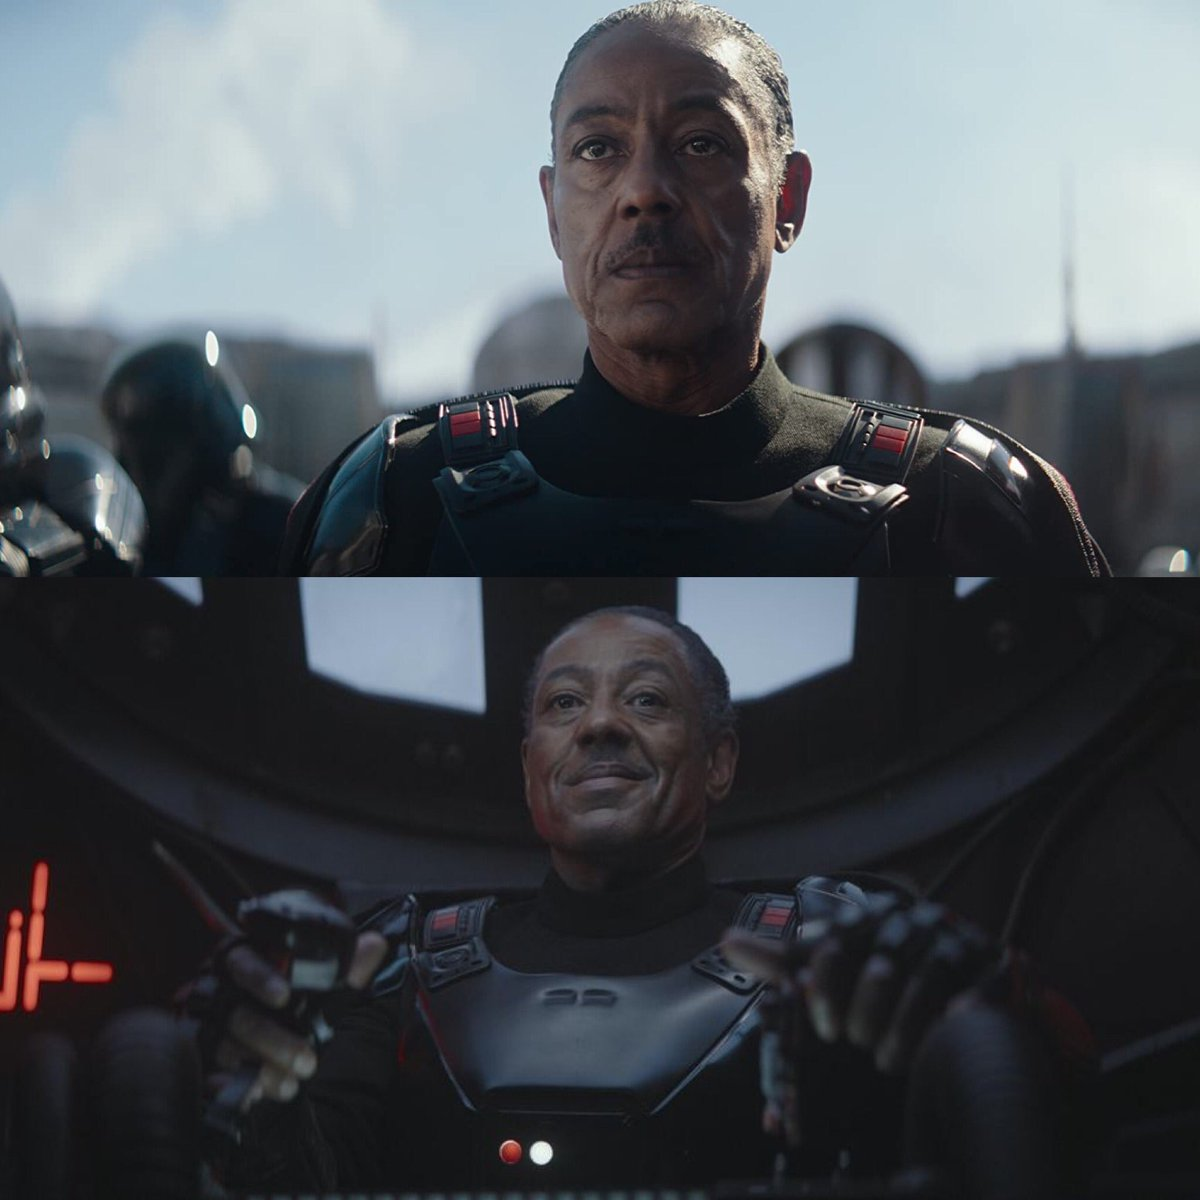 #FBF to playing the mysterious character of Moff Gideon in the first live-action Star Wars series #TheMandalorian. I love being able to play such a complex role. Who's getting excited for season 2?